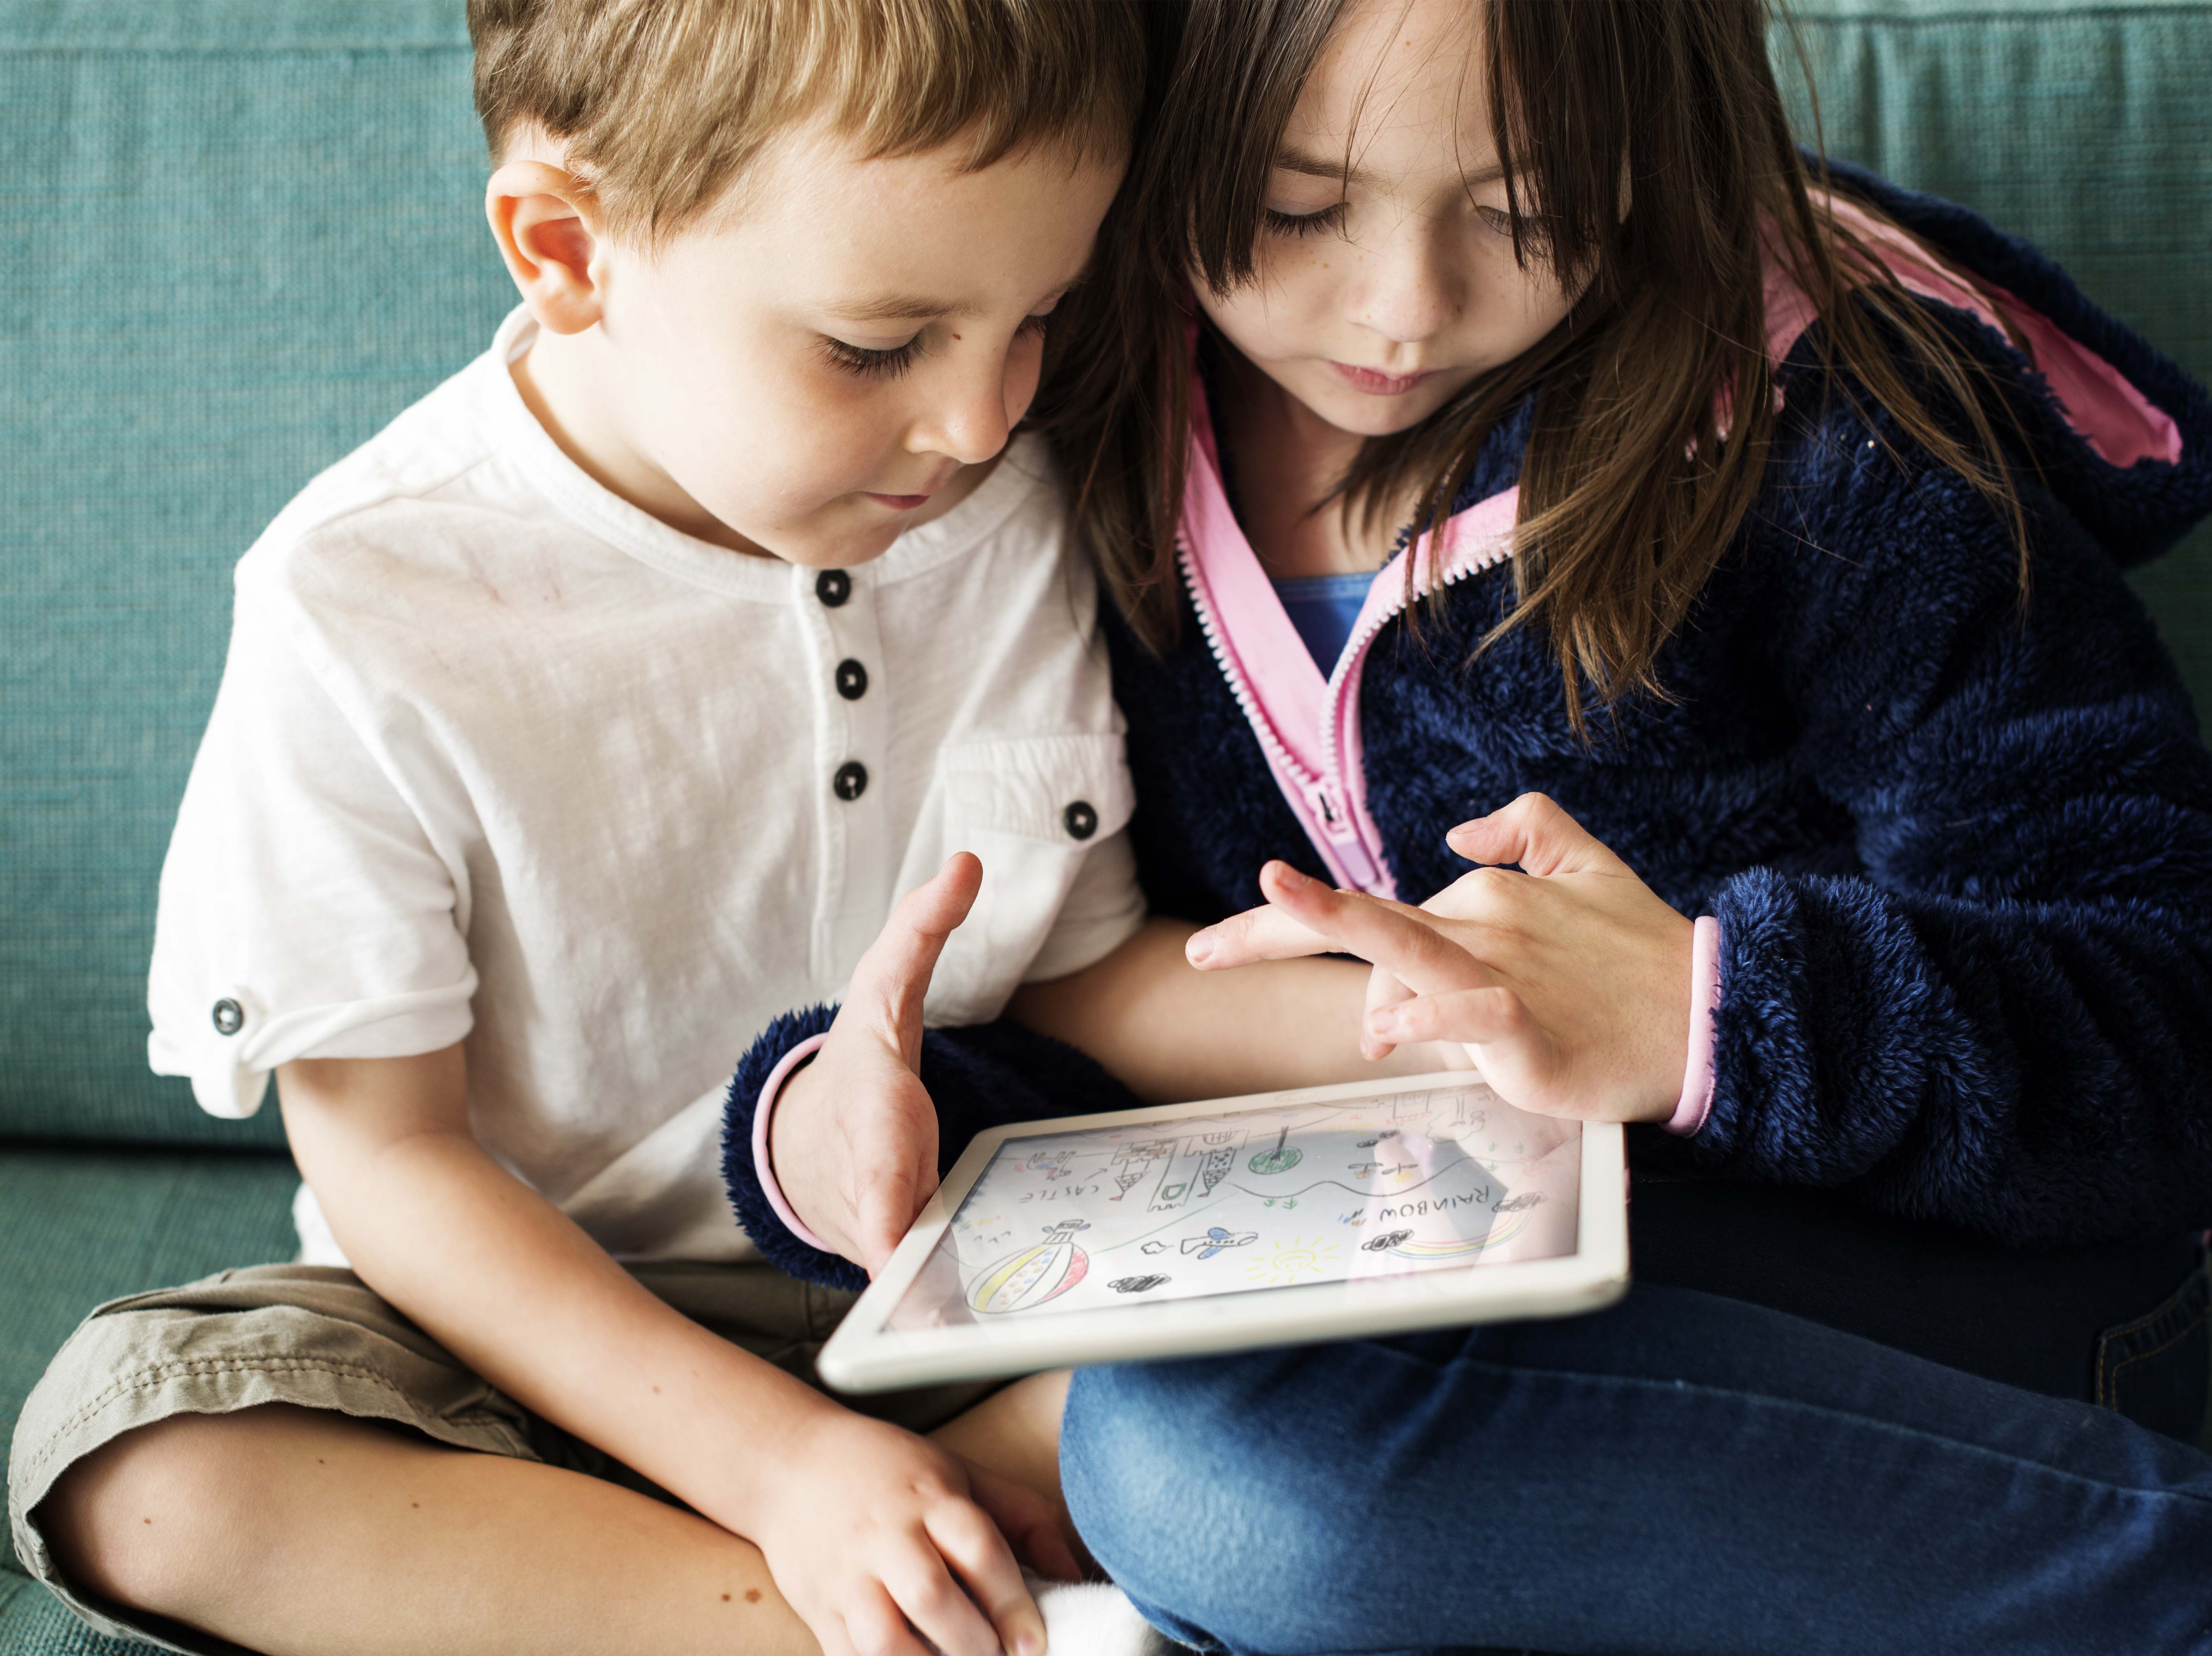 General Comment on Children and the Digital